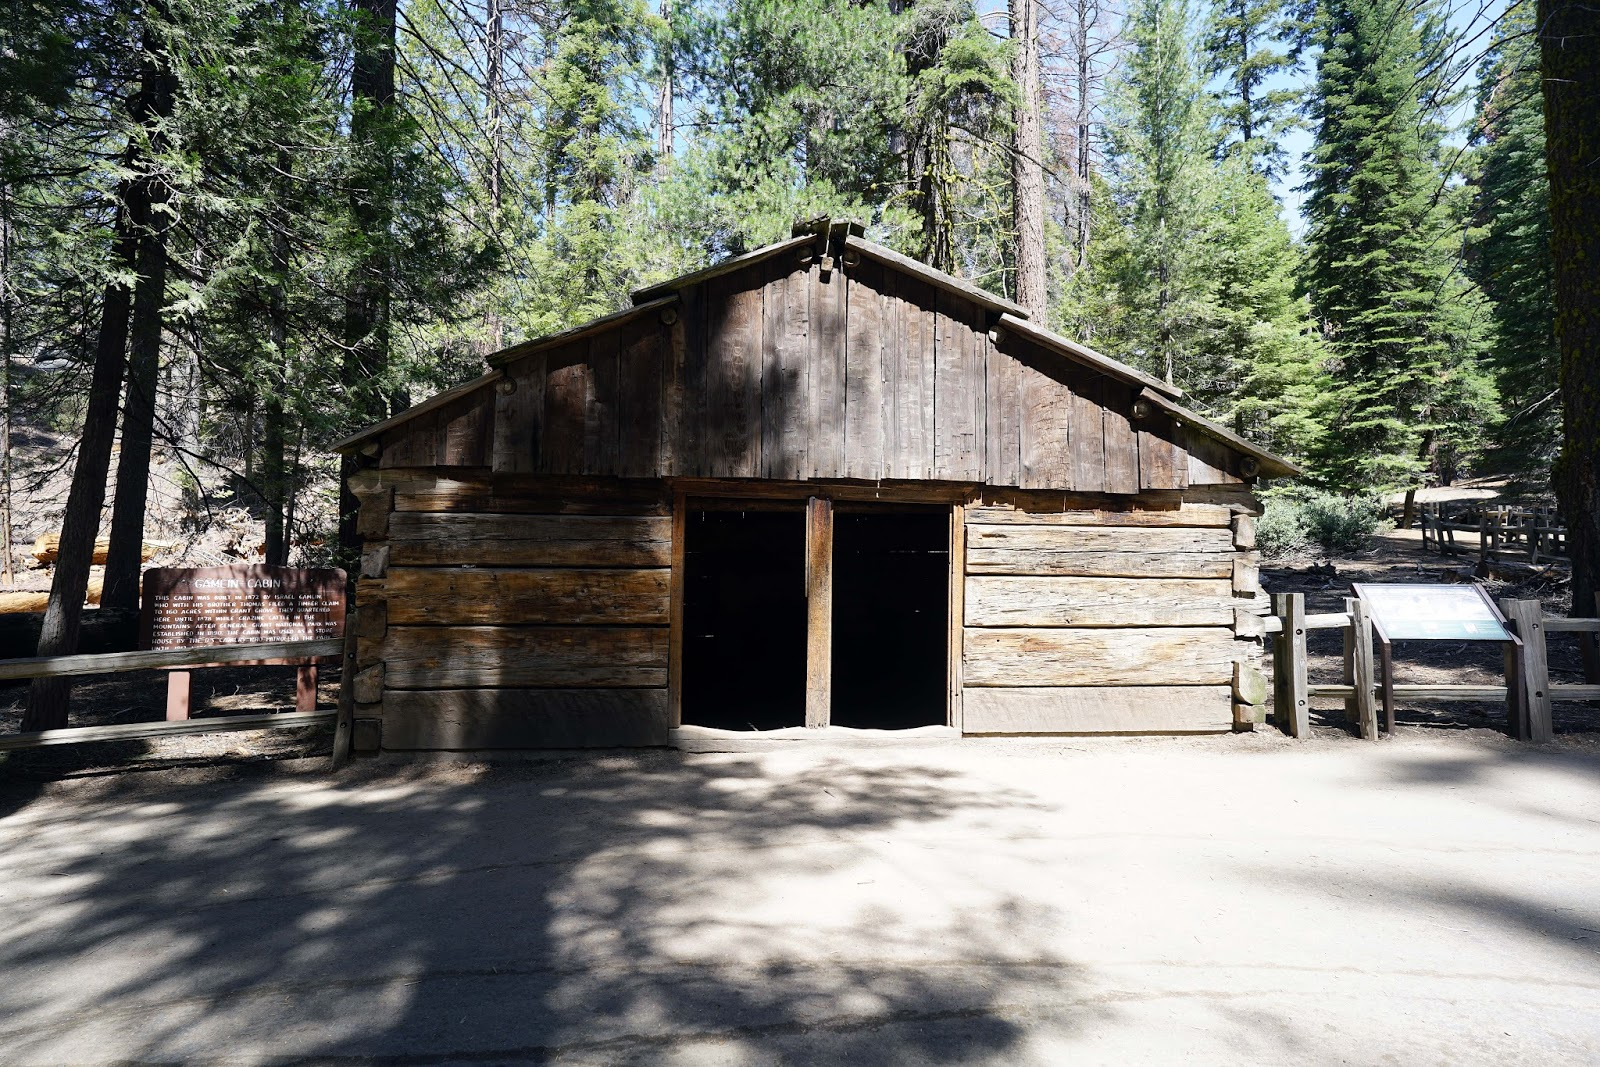 park squatter cabins s x gallery file photo national of cabin in sequoia